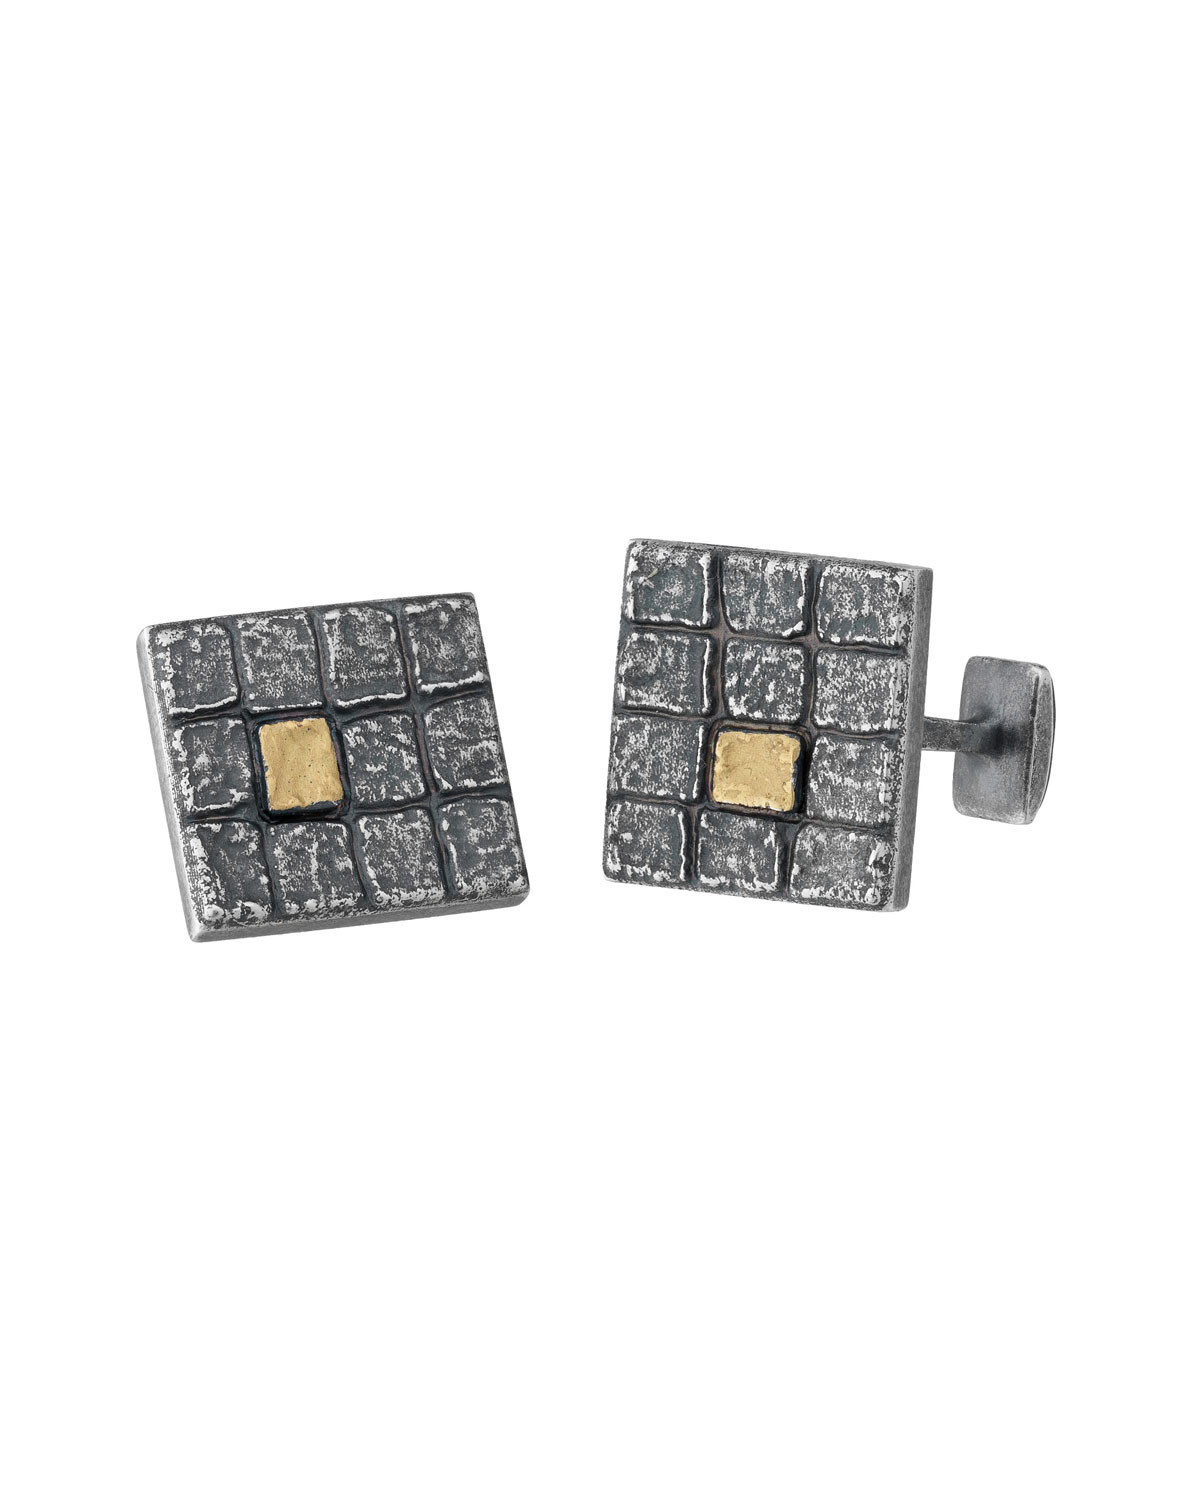 MARCO DAL MASO SQUARE OXIDIZED SILVER CUFF LINKS W/ 18K GOLD